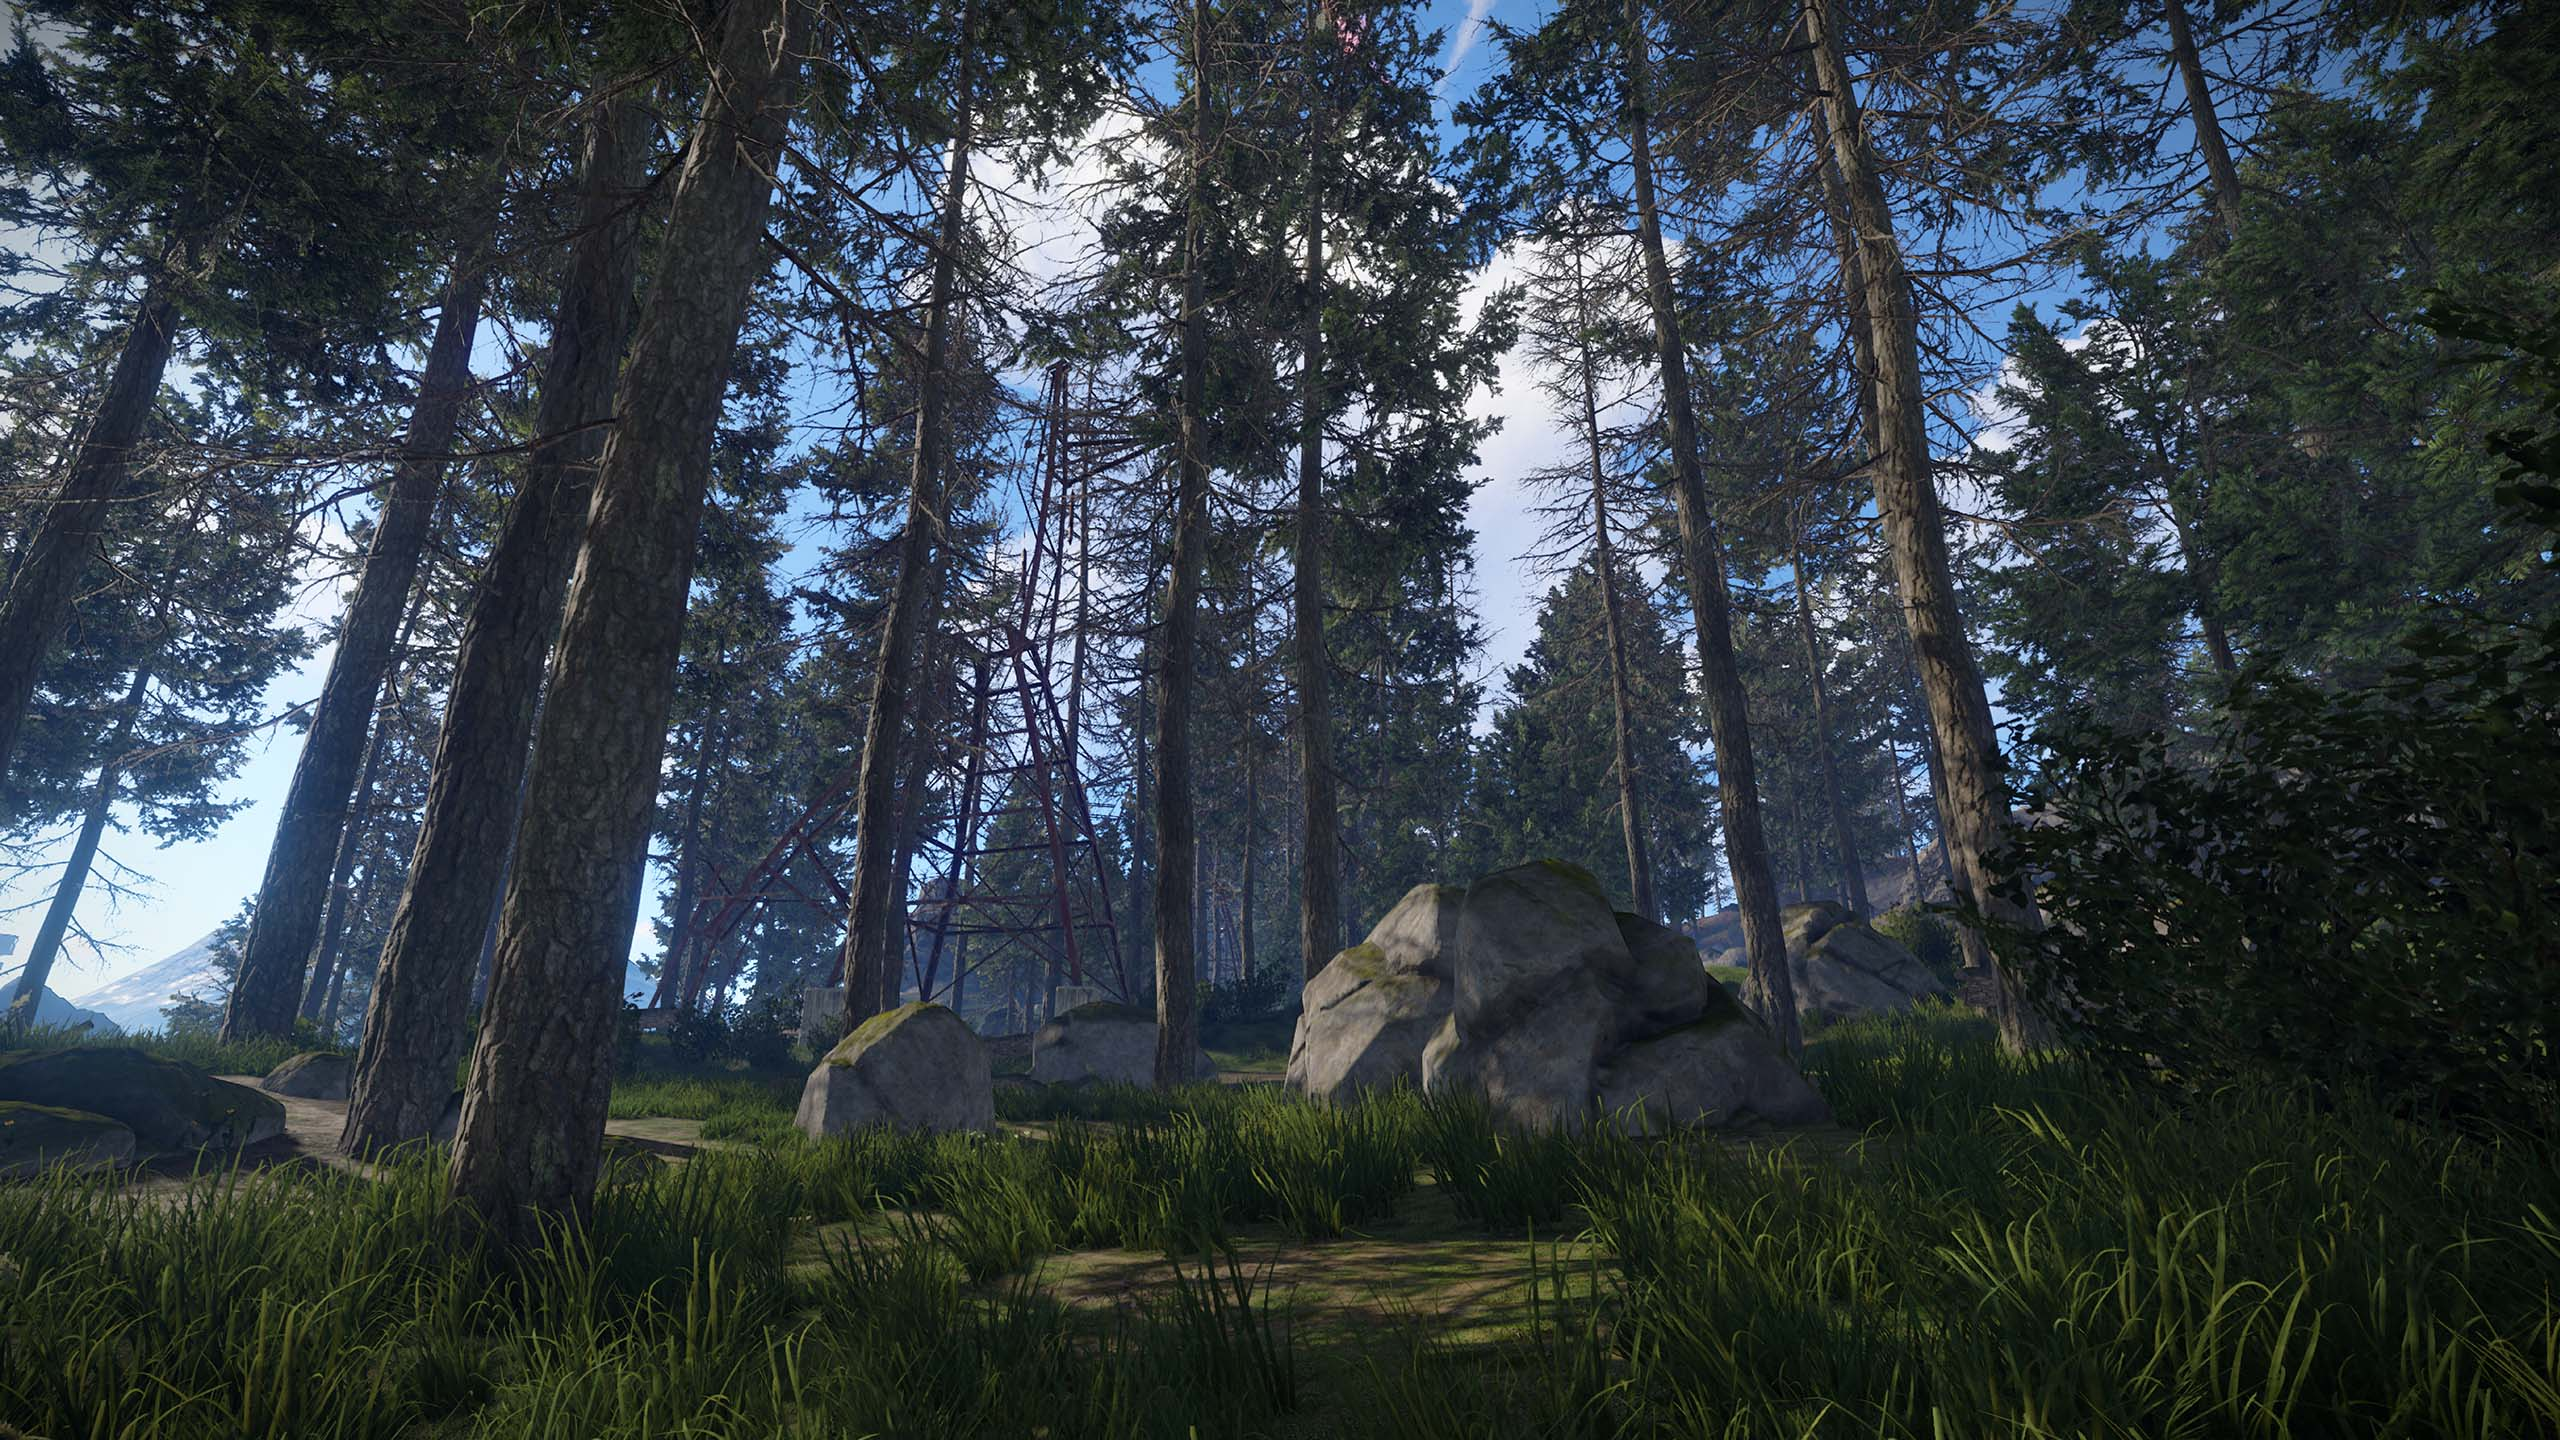 Rust tuxdb a very small post holiday update the xmas event is over the servers are wiped though blueprints are saved and work on new trees has begun malvernweather Image collections